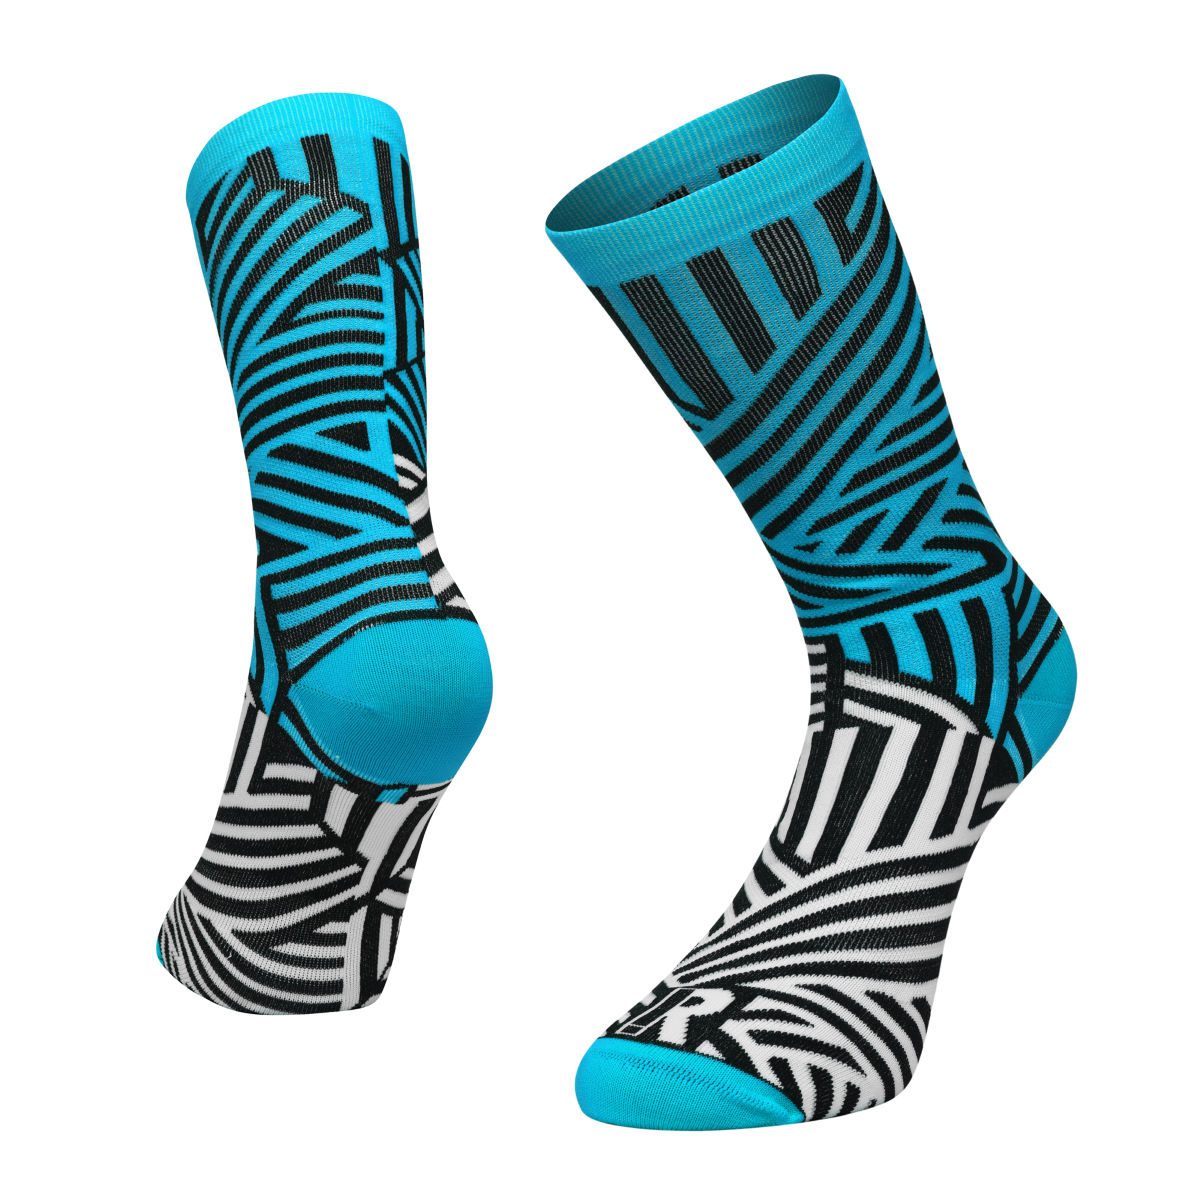 Ratio Dash 20 cm Sock (Blue/White) - Calcetines